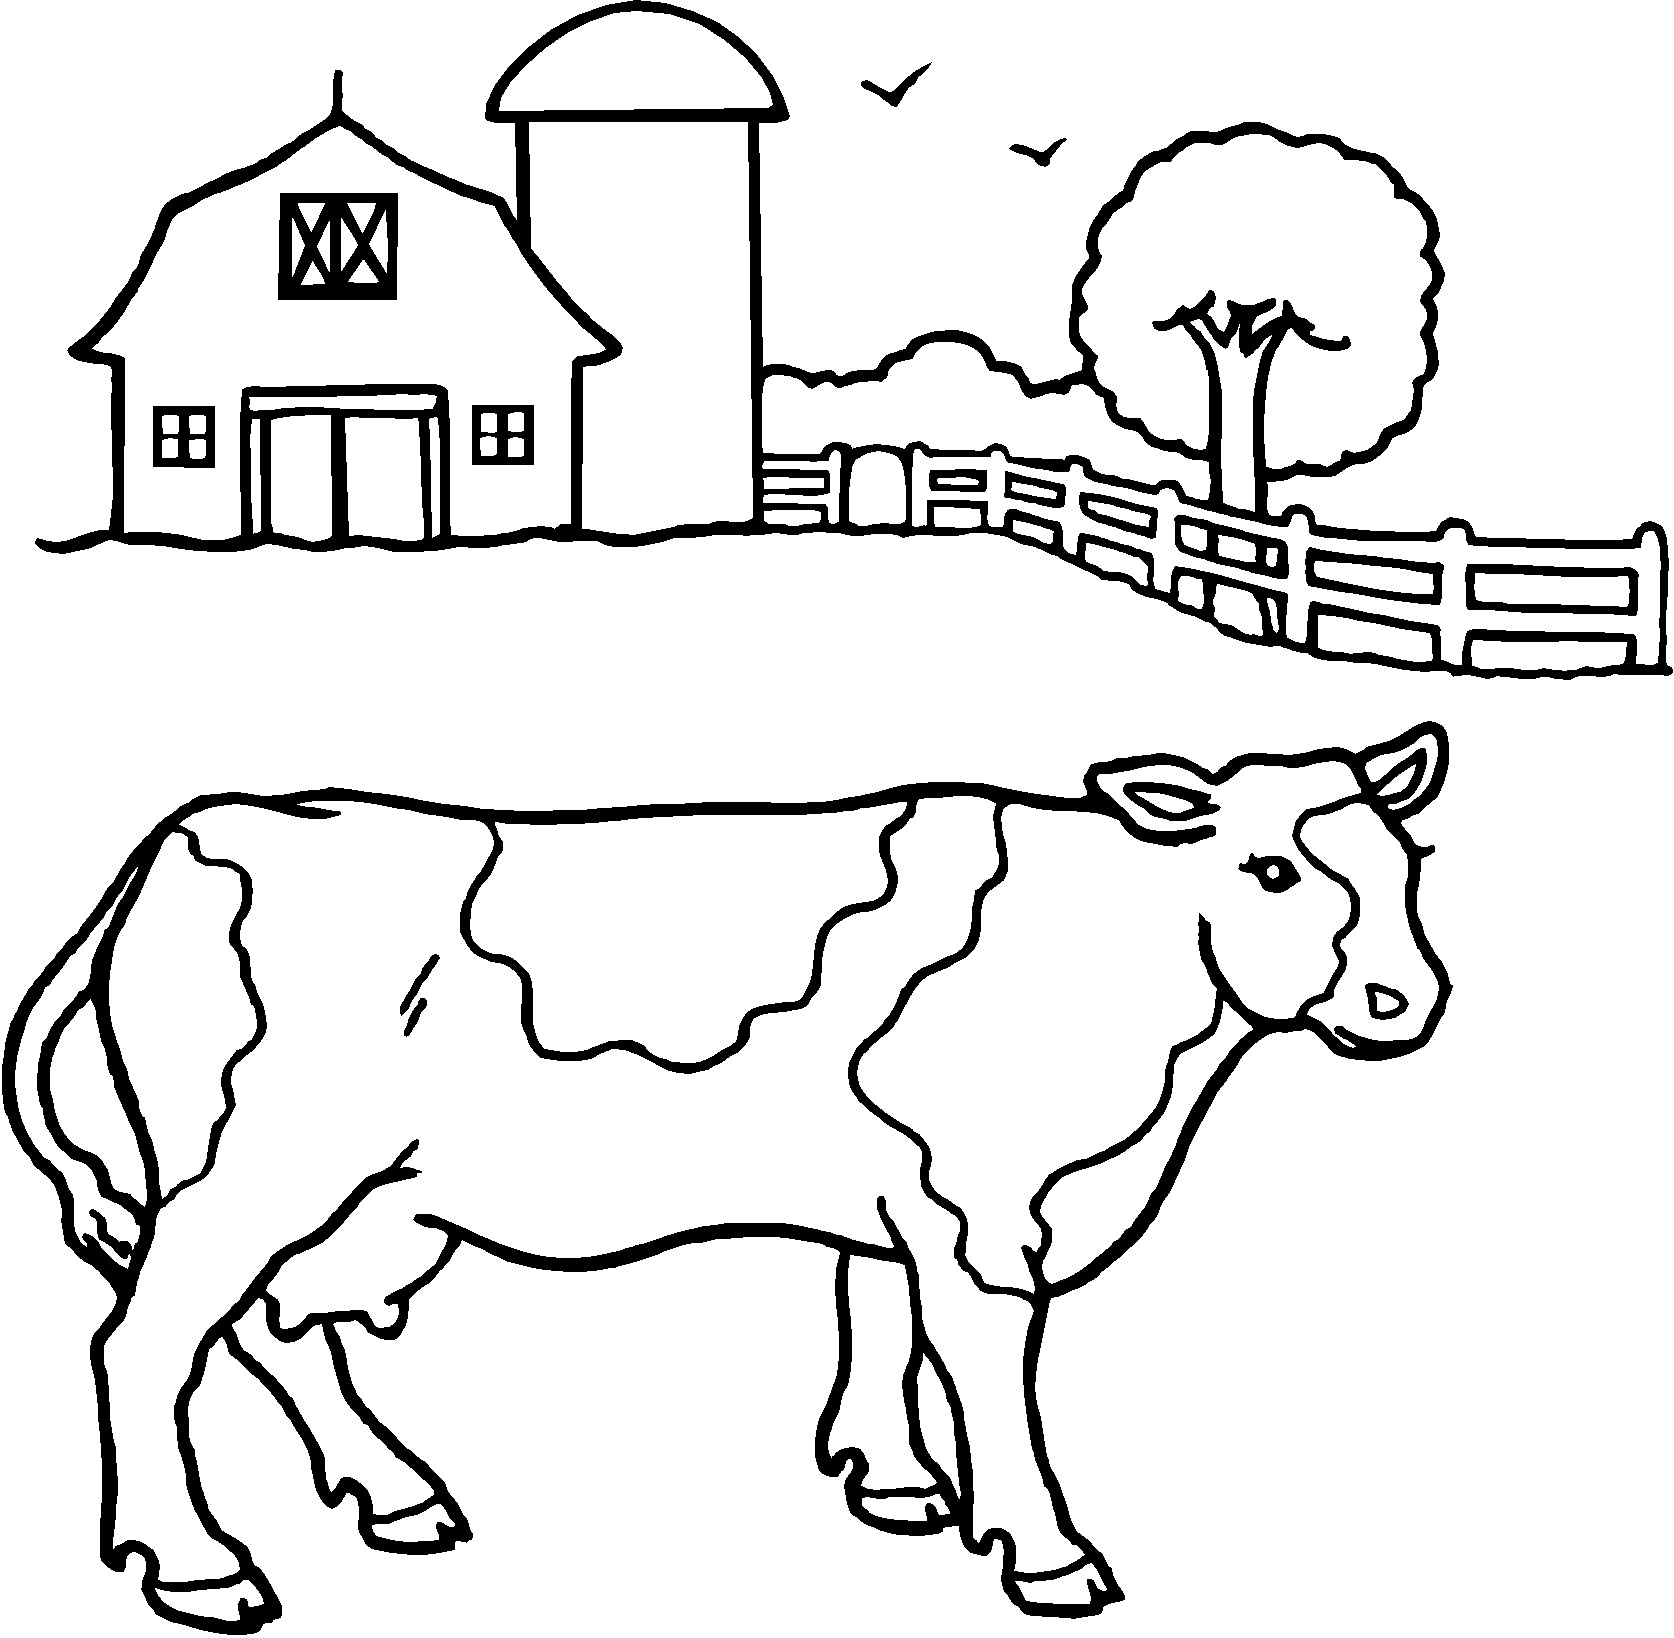 1674x1638 Fresh Cows Coloring Pages Collectionble Sheet Cow Photo Design